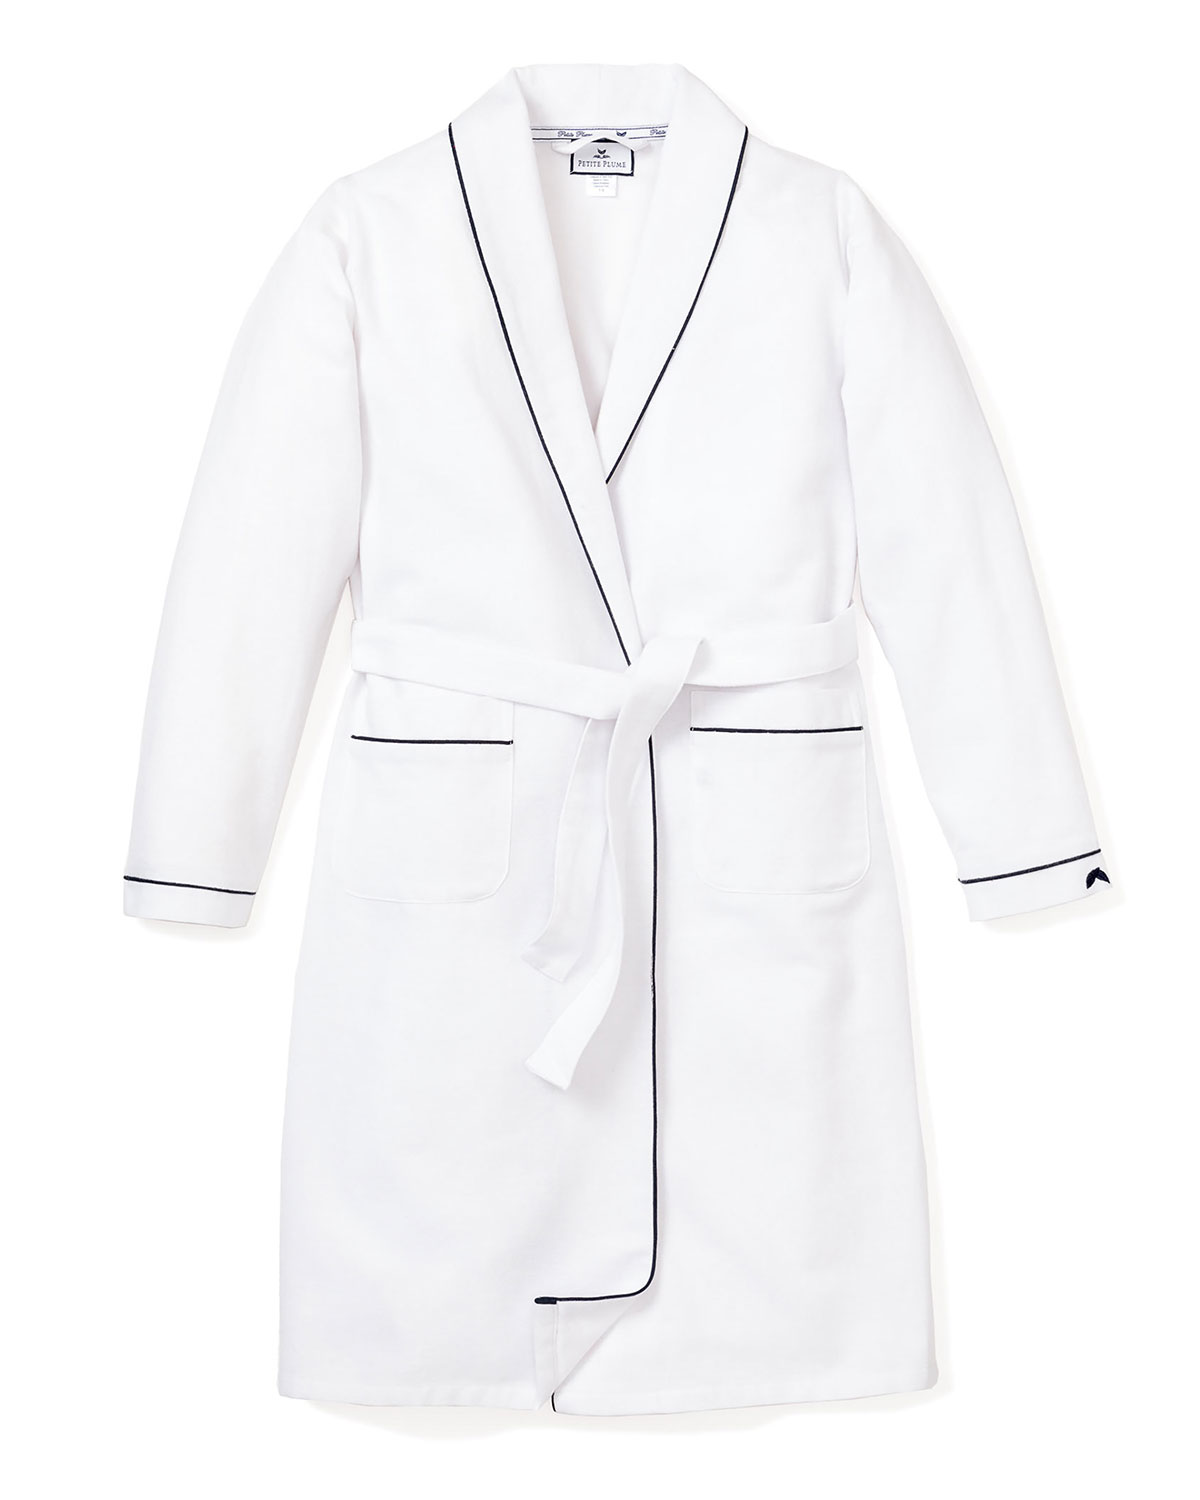 Petite Plume SOLID ROBE W/ CONTRAST PIPING